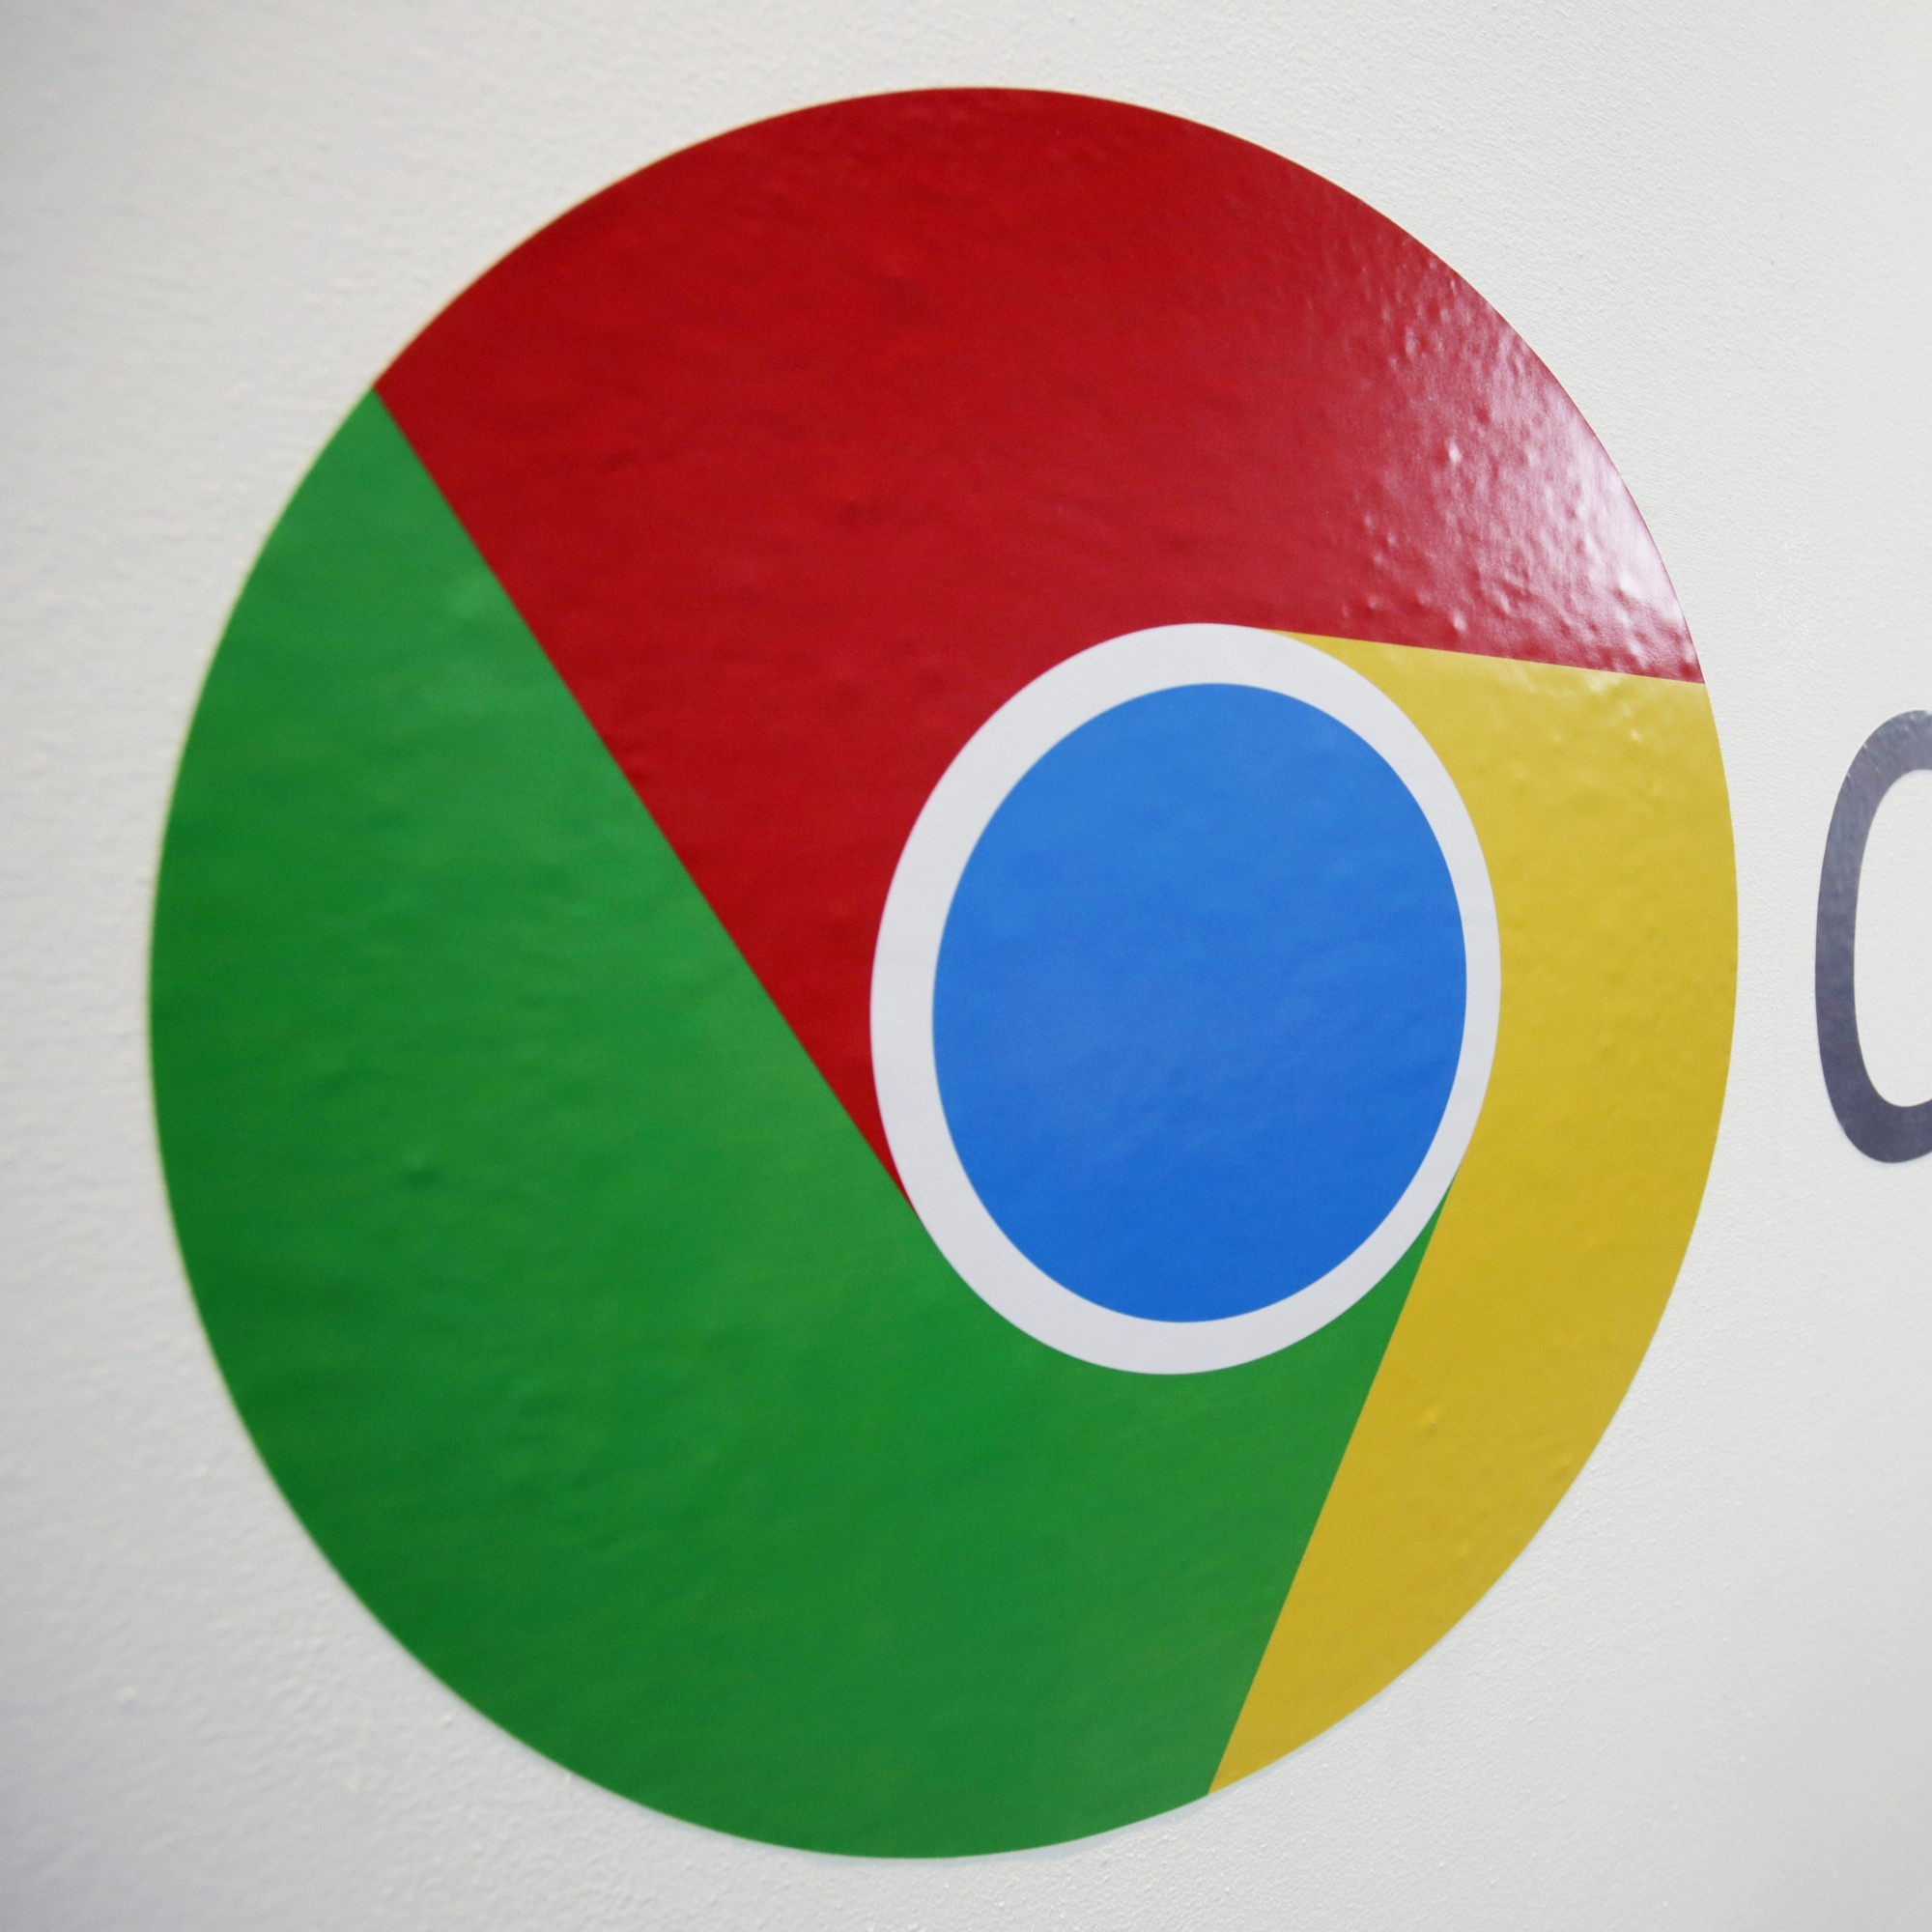 Google Chrome will be getting itself a makeover